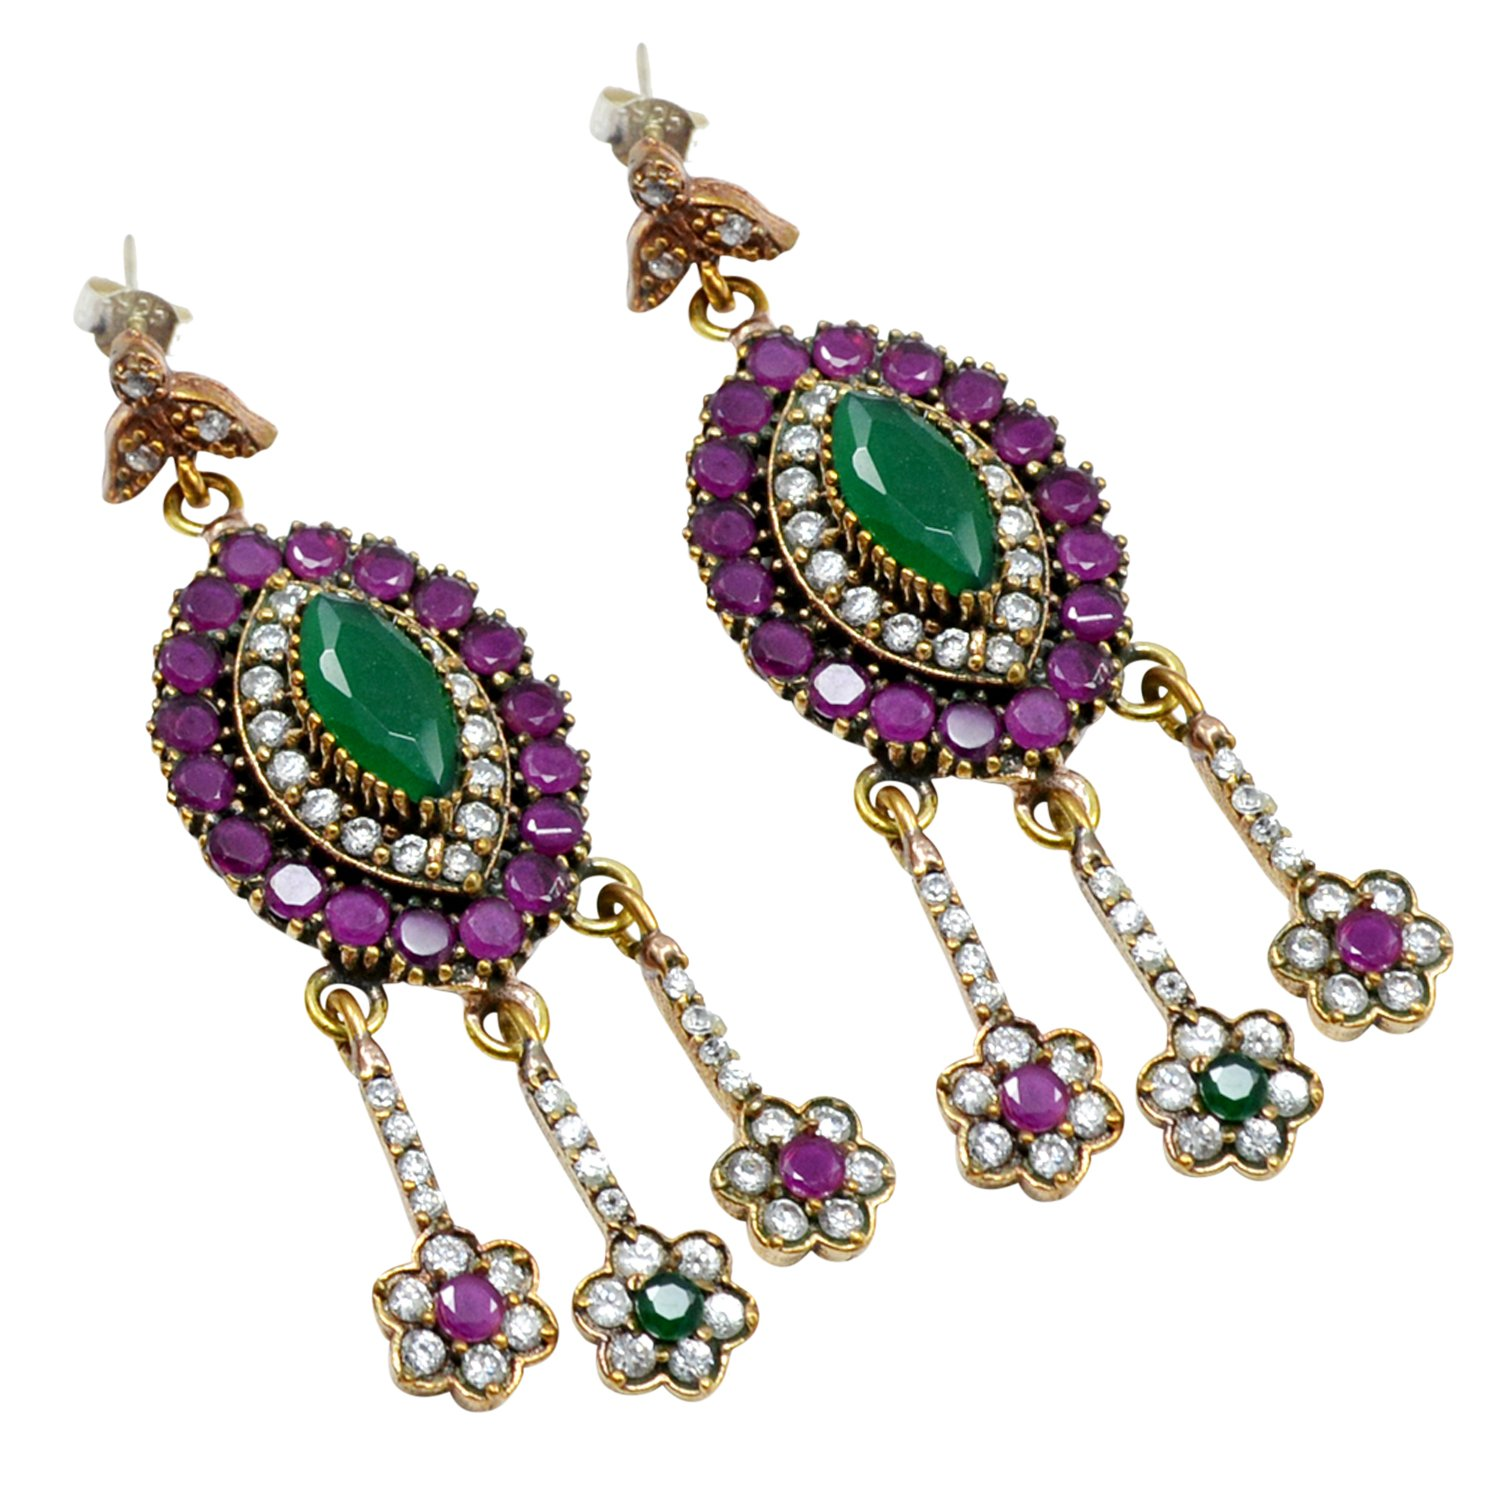 Lab 925 Sterling Silver With Bronze Drop /& Dangle Turkish Earring PG-104501 Saamarth Impex Emerald Ruby /& Topaz